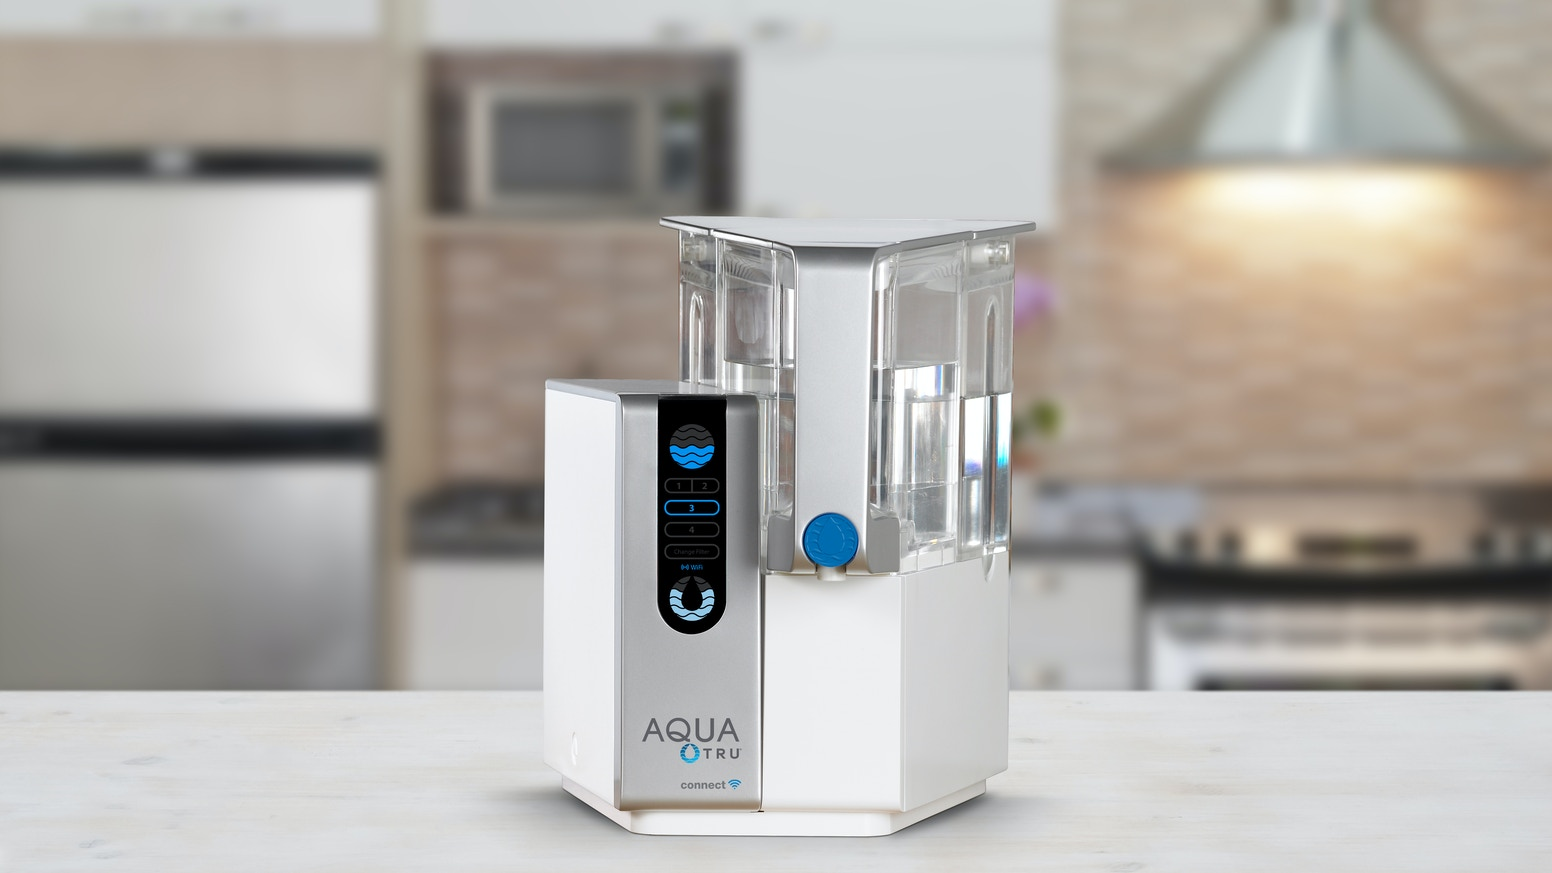 The smart, 4-stage water purifier certified to remove 82 harmful contaminants. Track water quality, filter life & plastic bottles saved